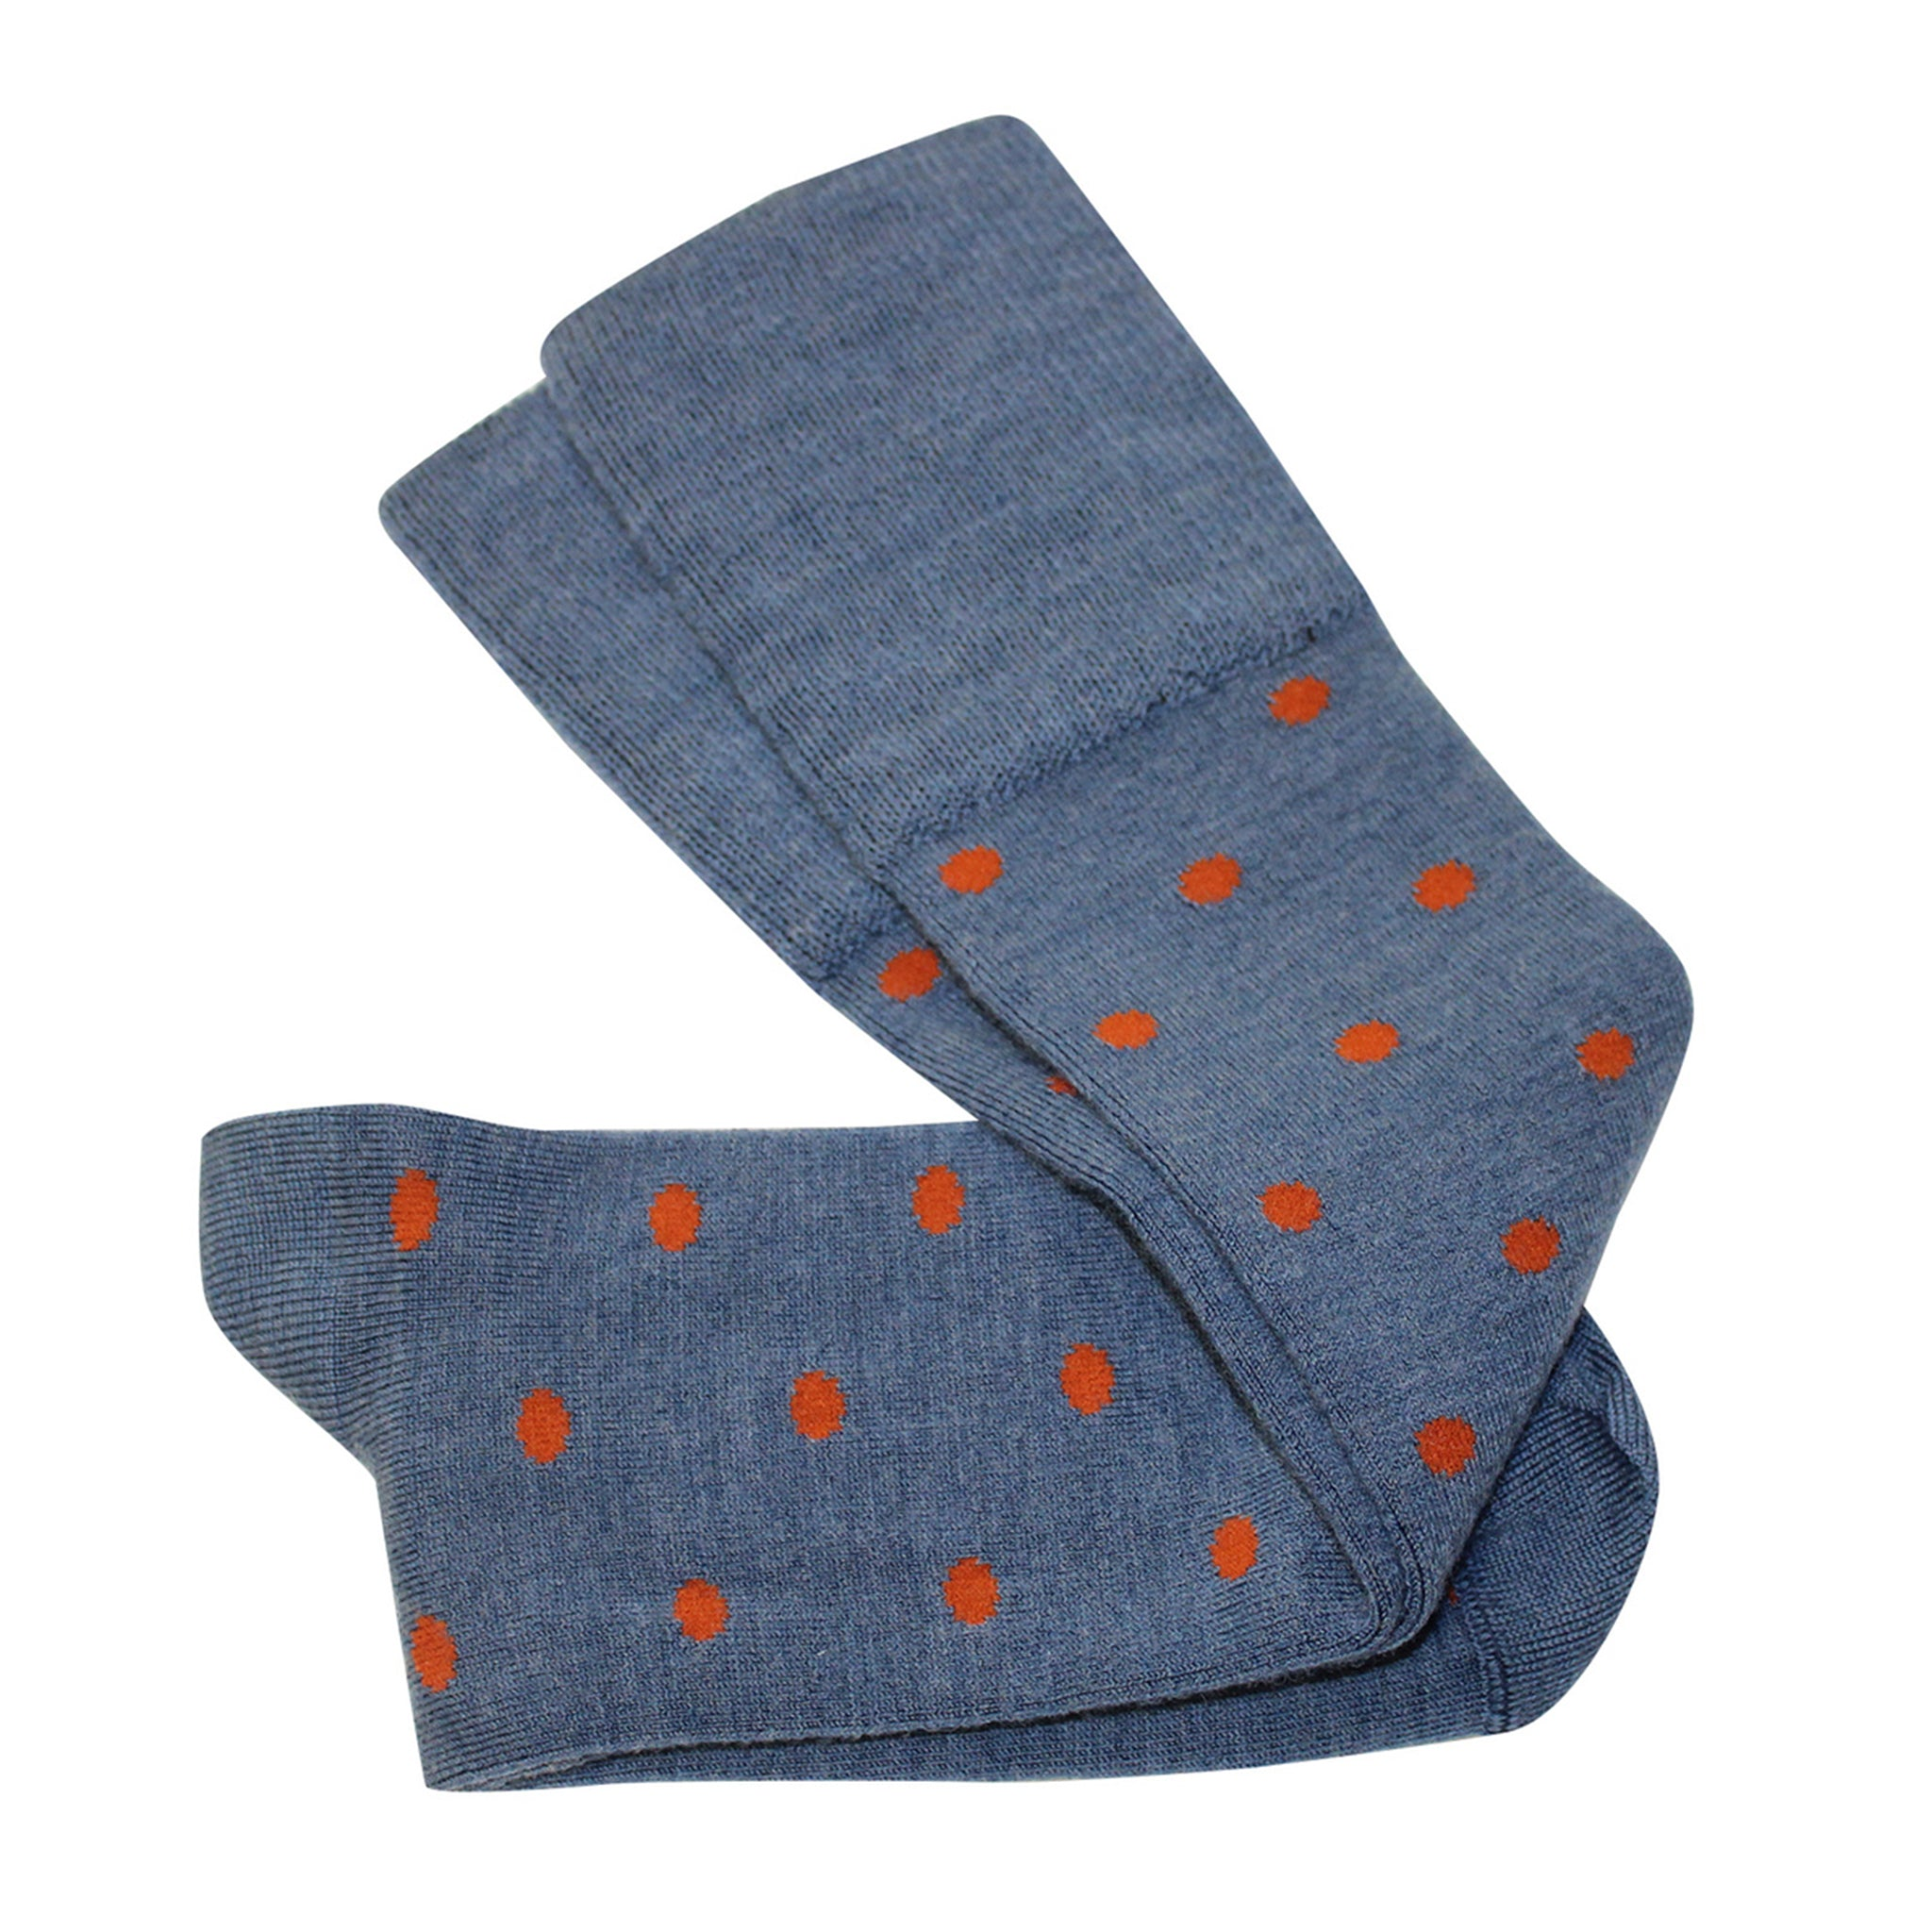 Dotty Knee High Socks Blue/Rust